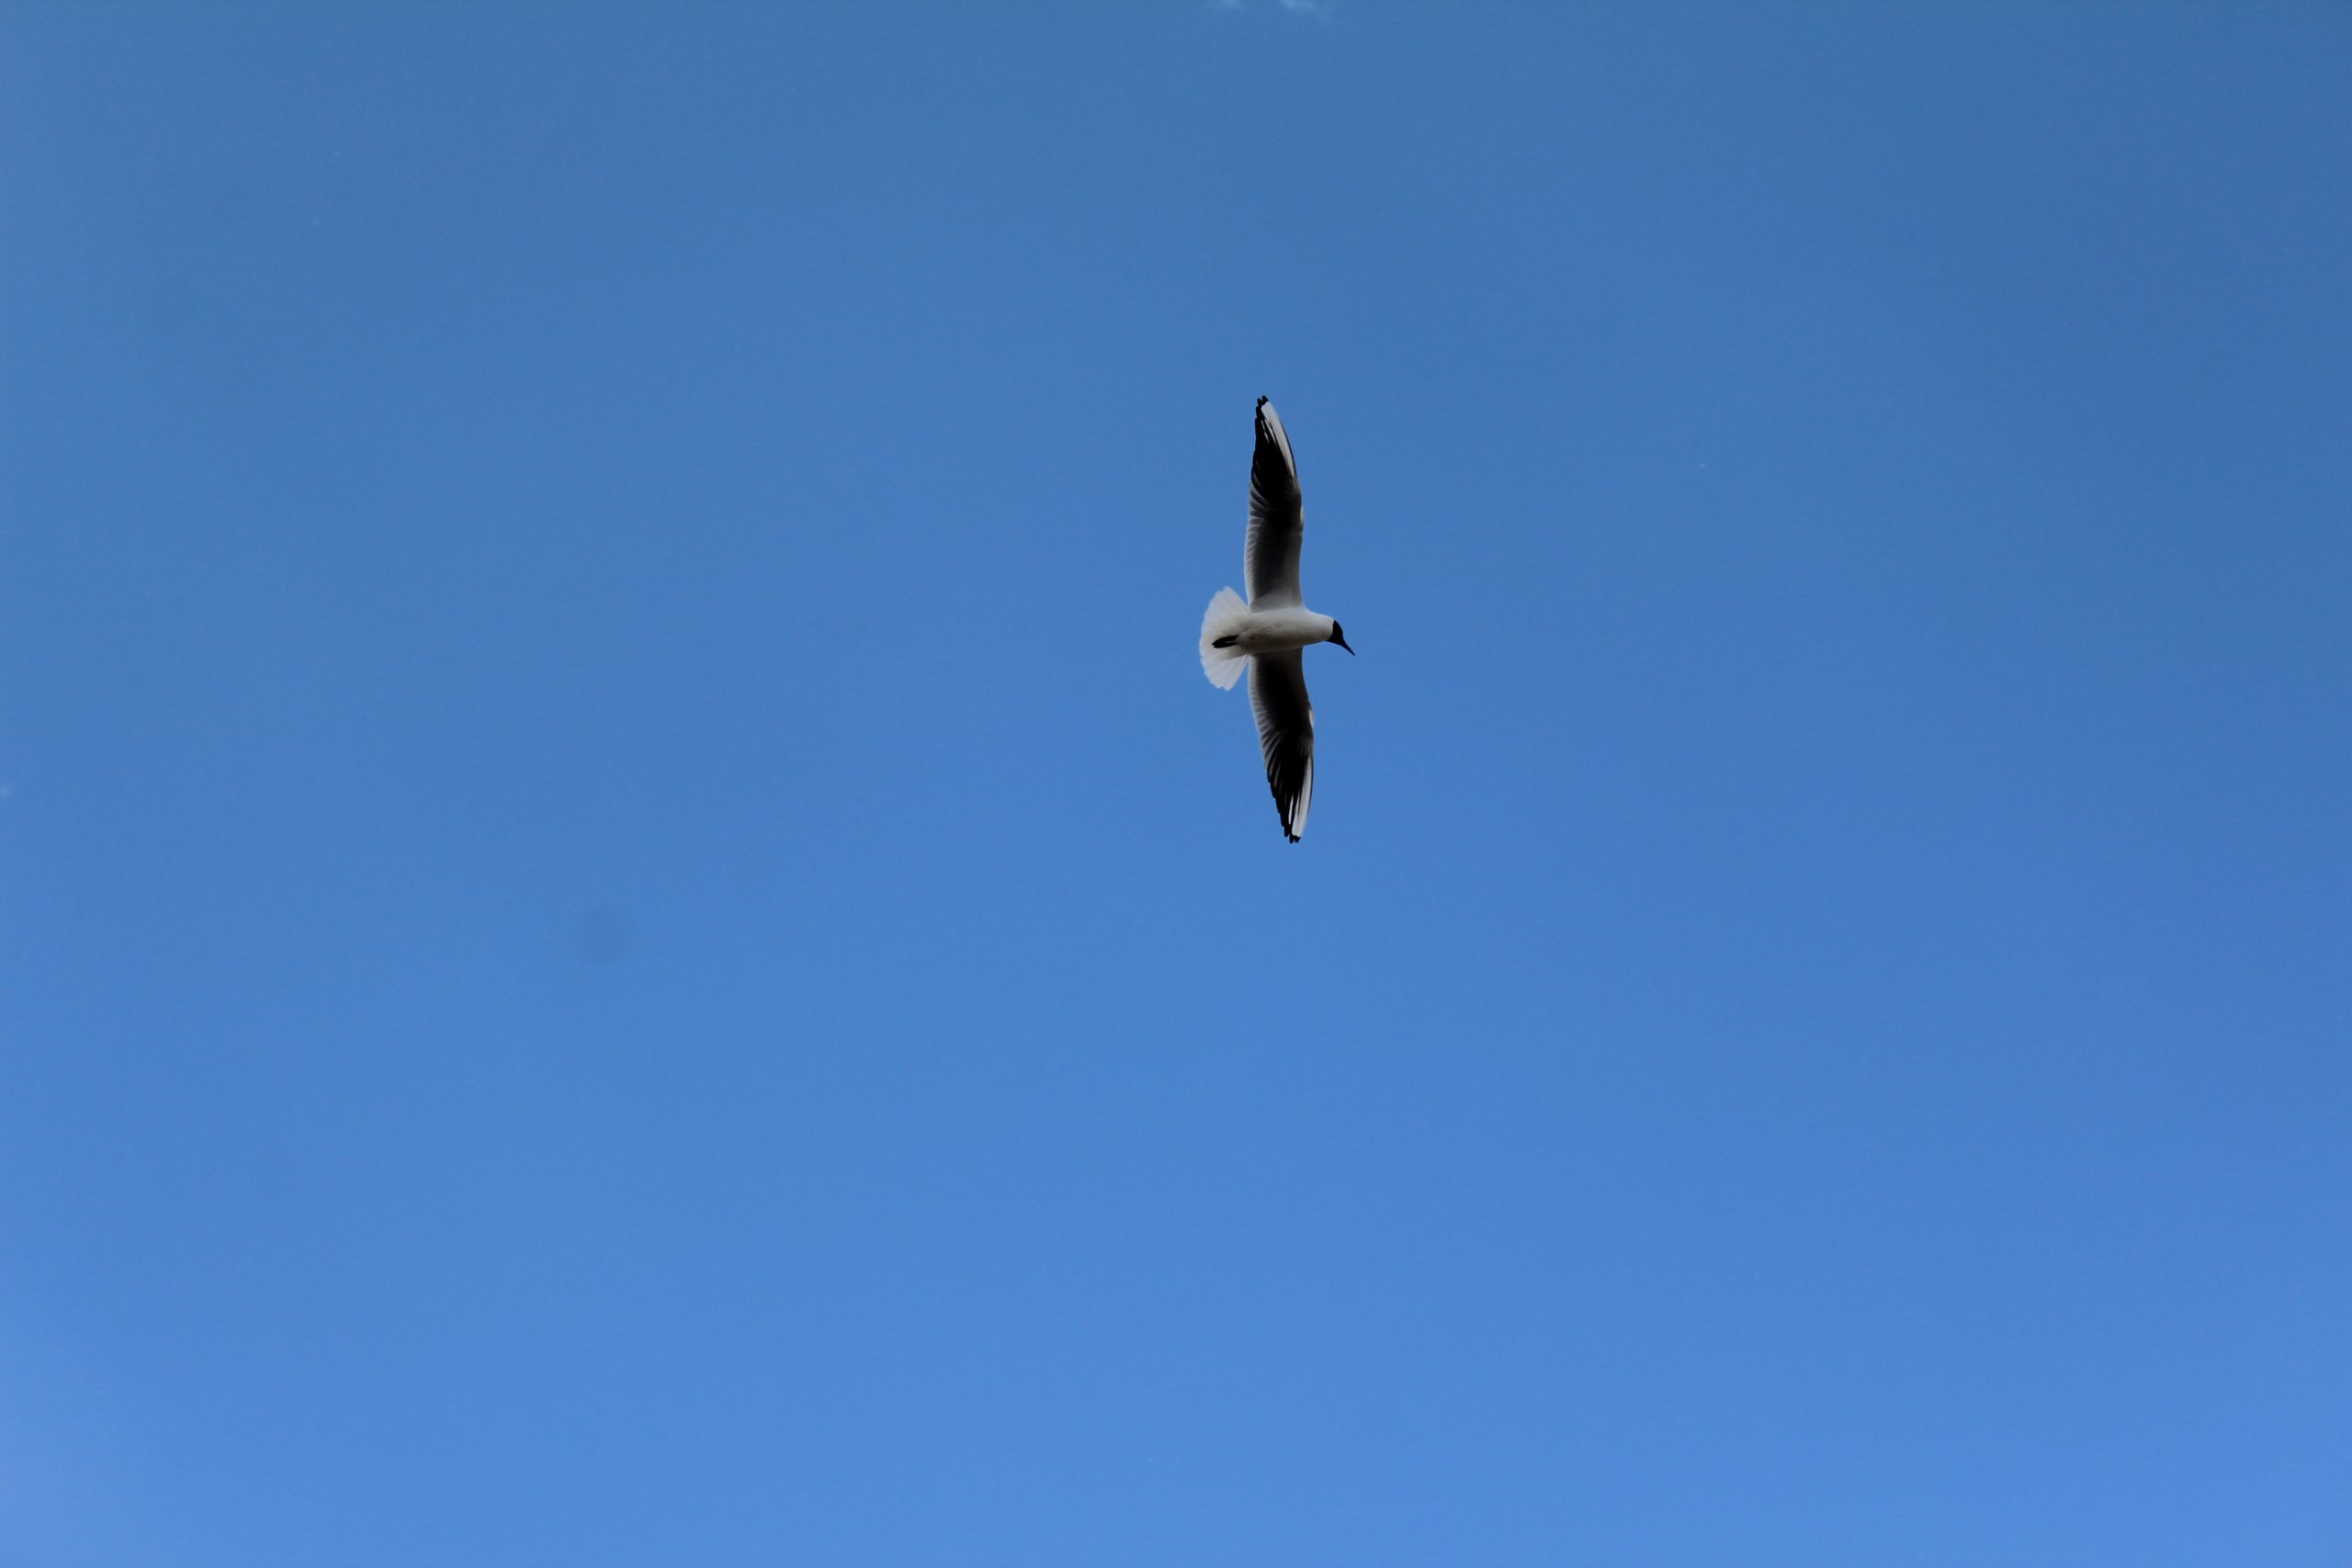 seagull in the sky Image